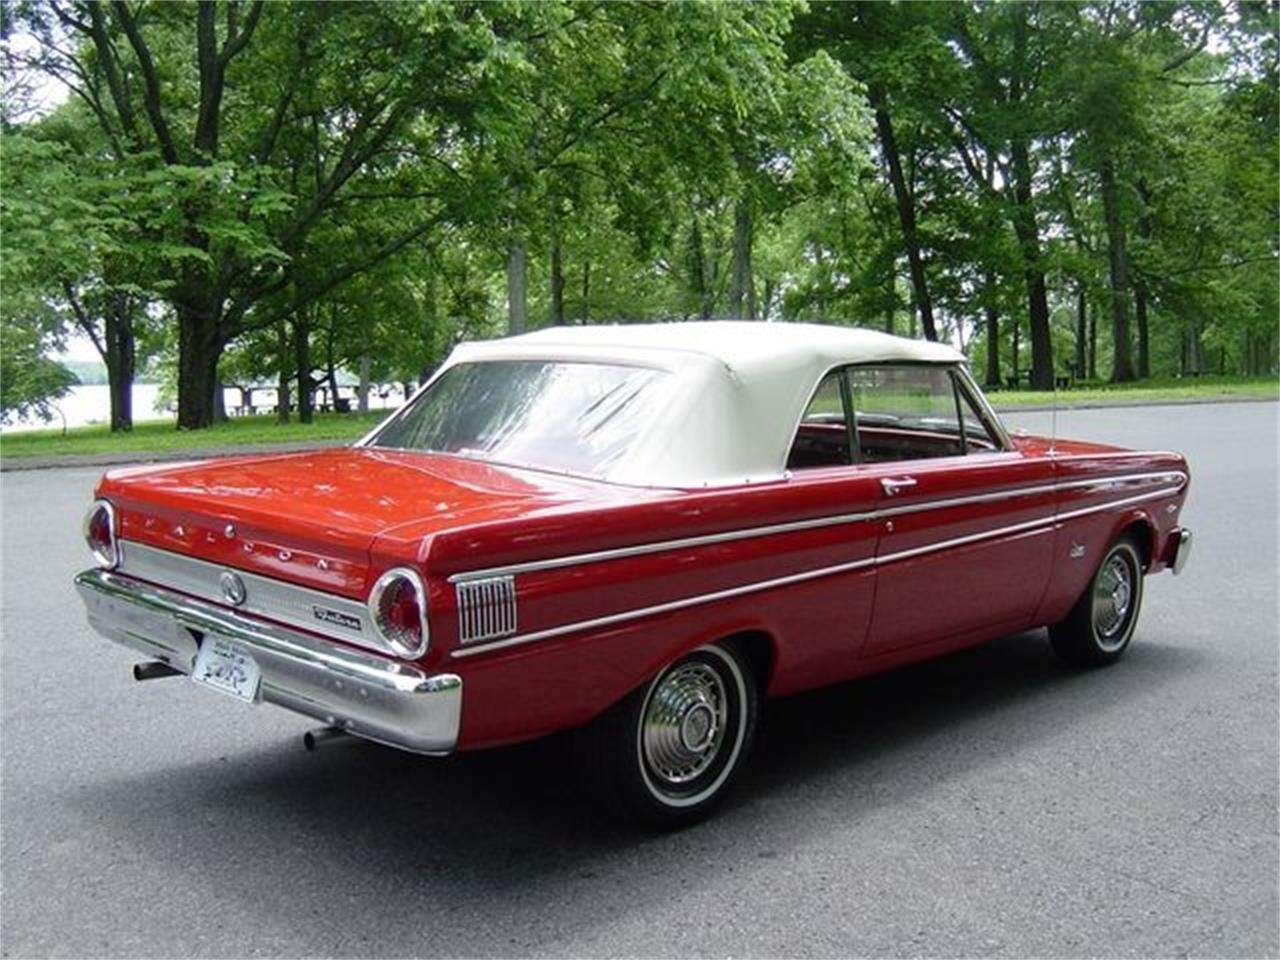 Large Picture of 1964 Ford Falcon Futura located in Hendersonville Tennessee - $19,900.00 Offered by Maple Motors - Q4WC